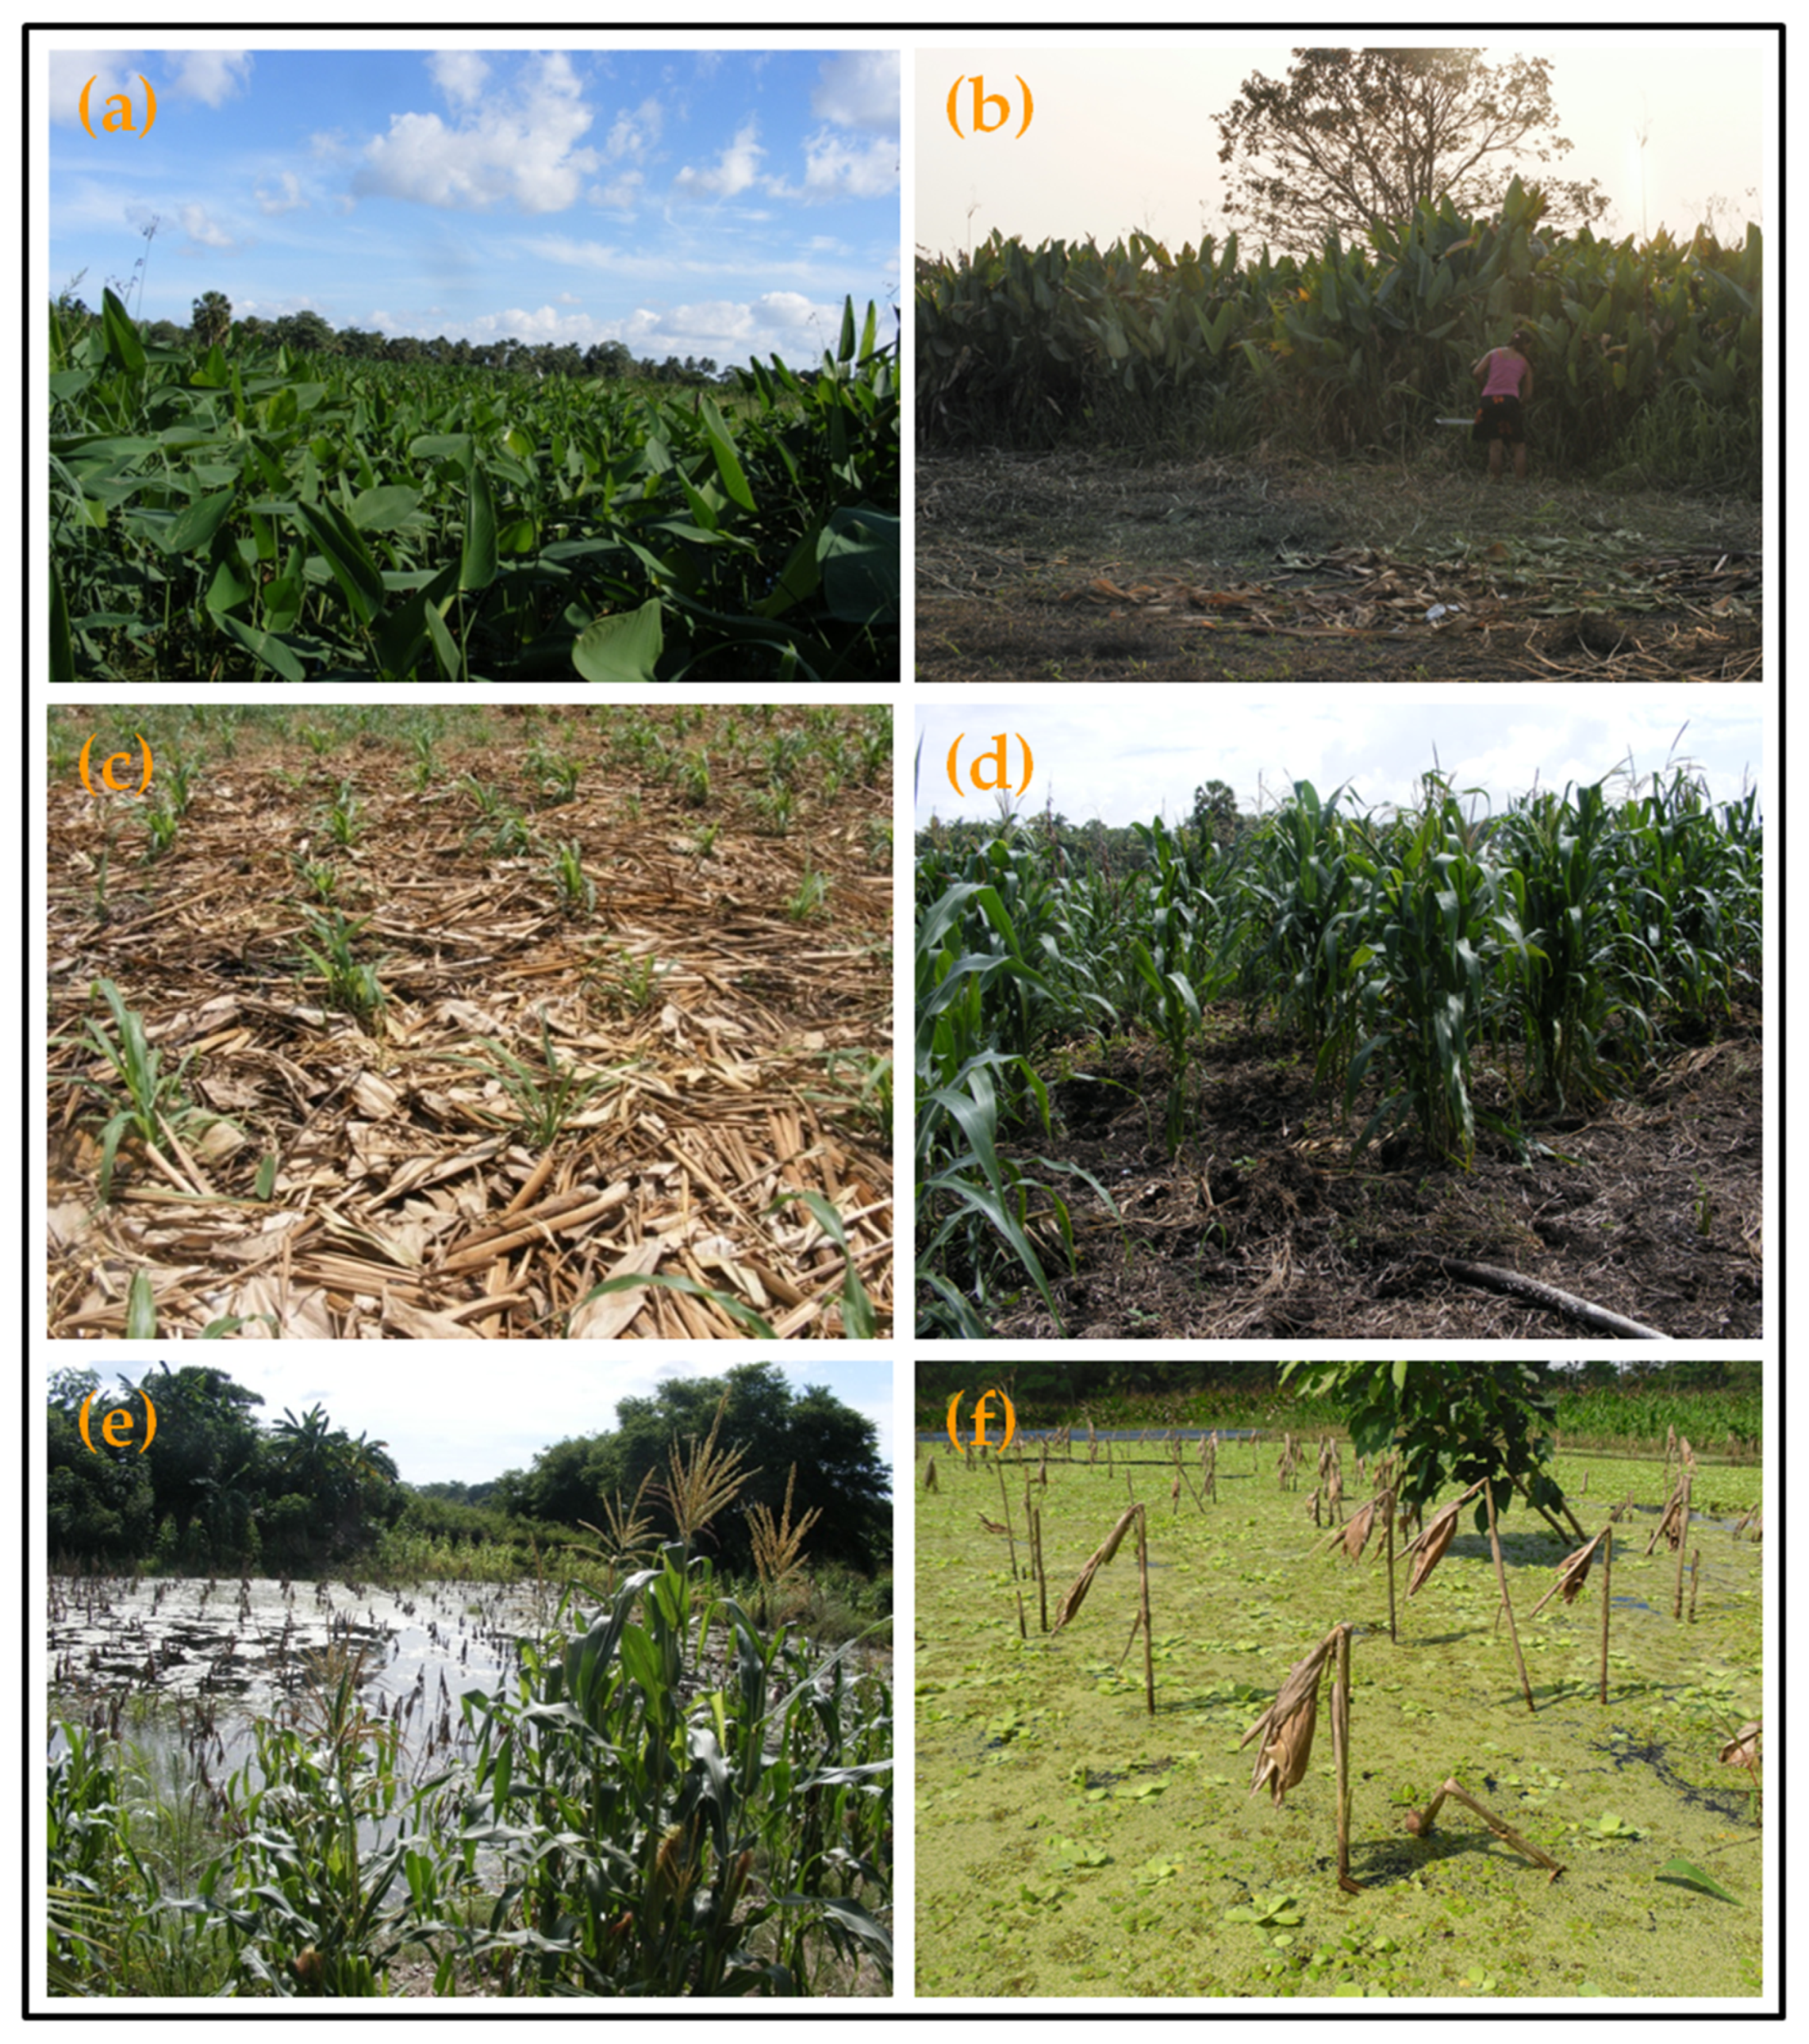 Sustainability | Free Full-Text | The Marceño Agroecosystem